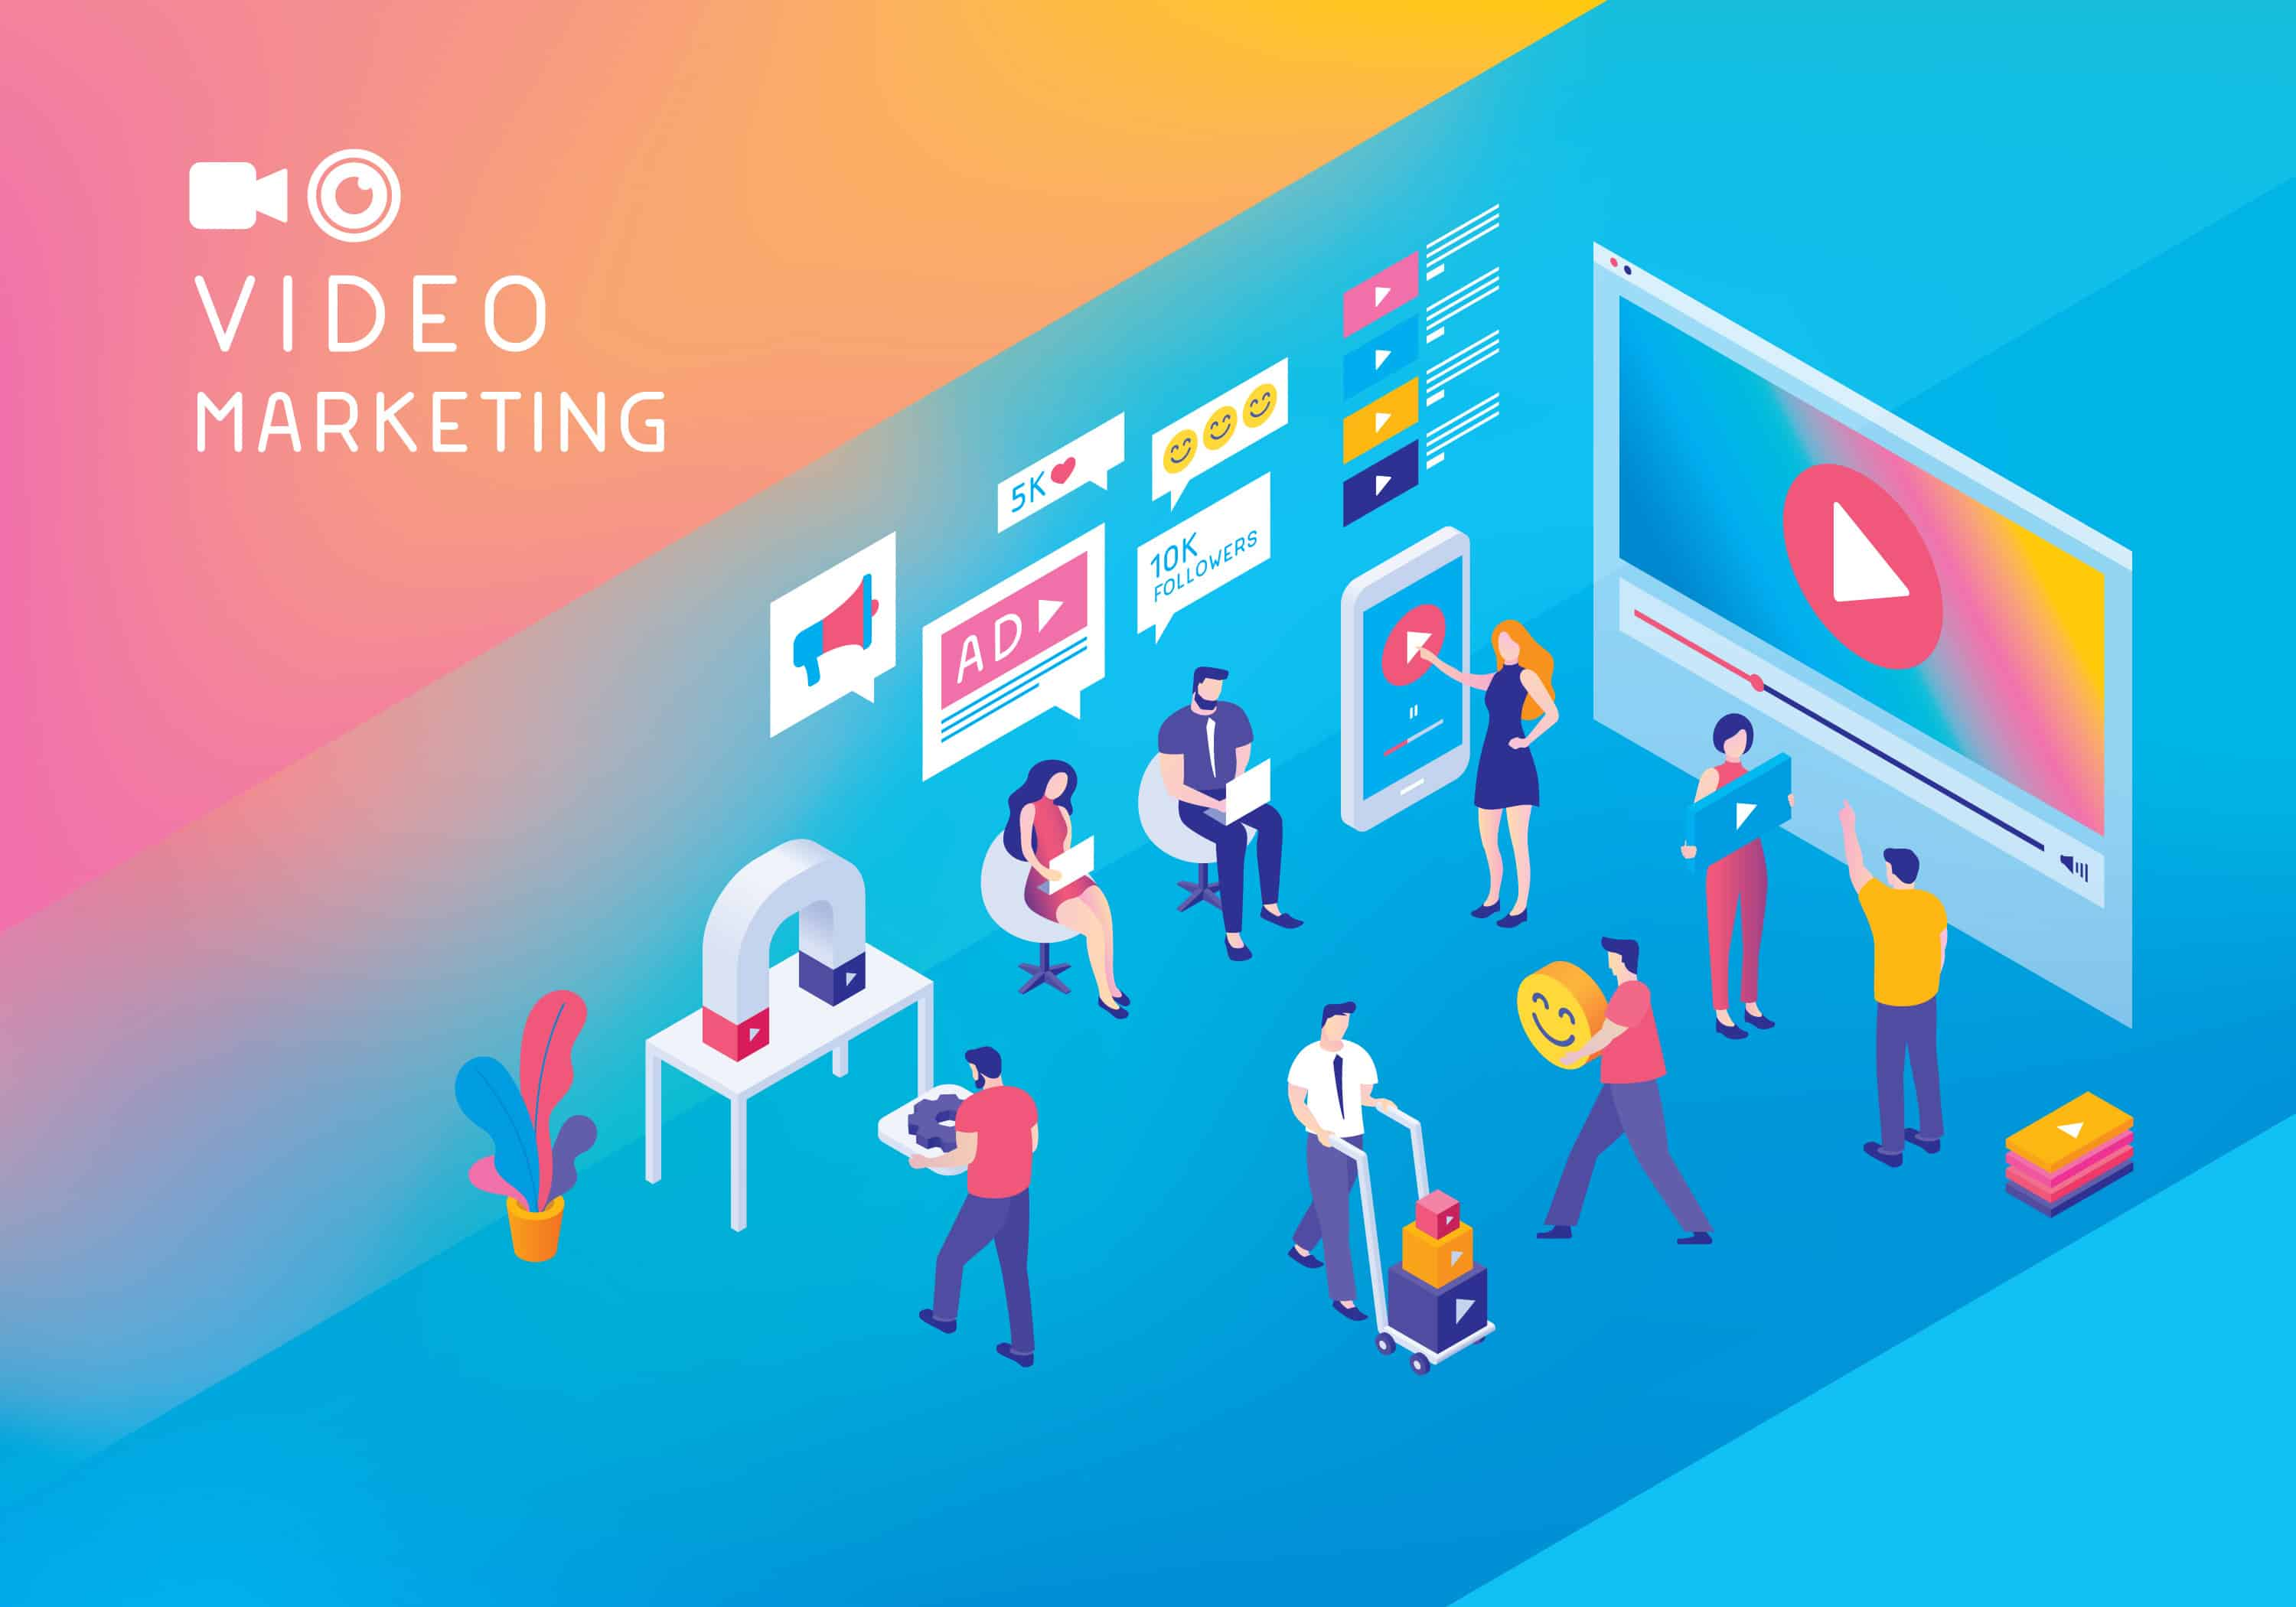 5 Video Marketing Mistakes to Avoid